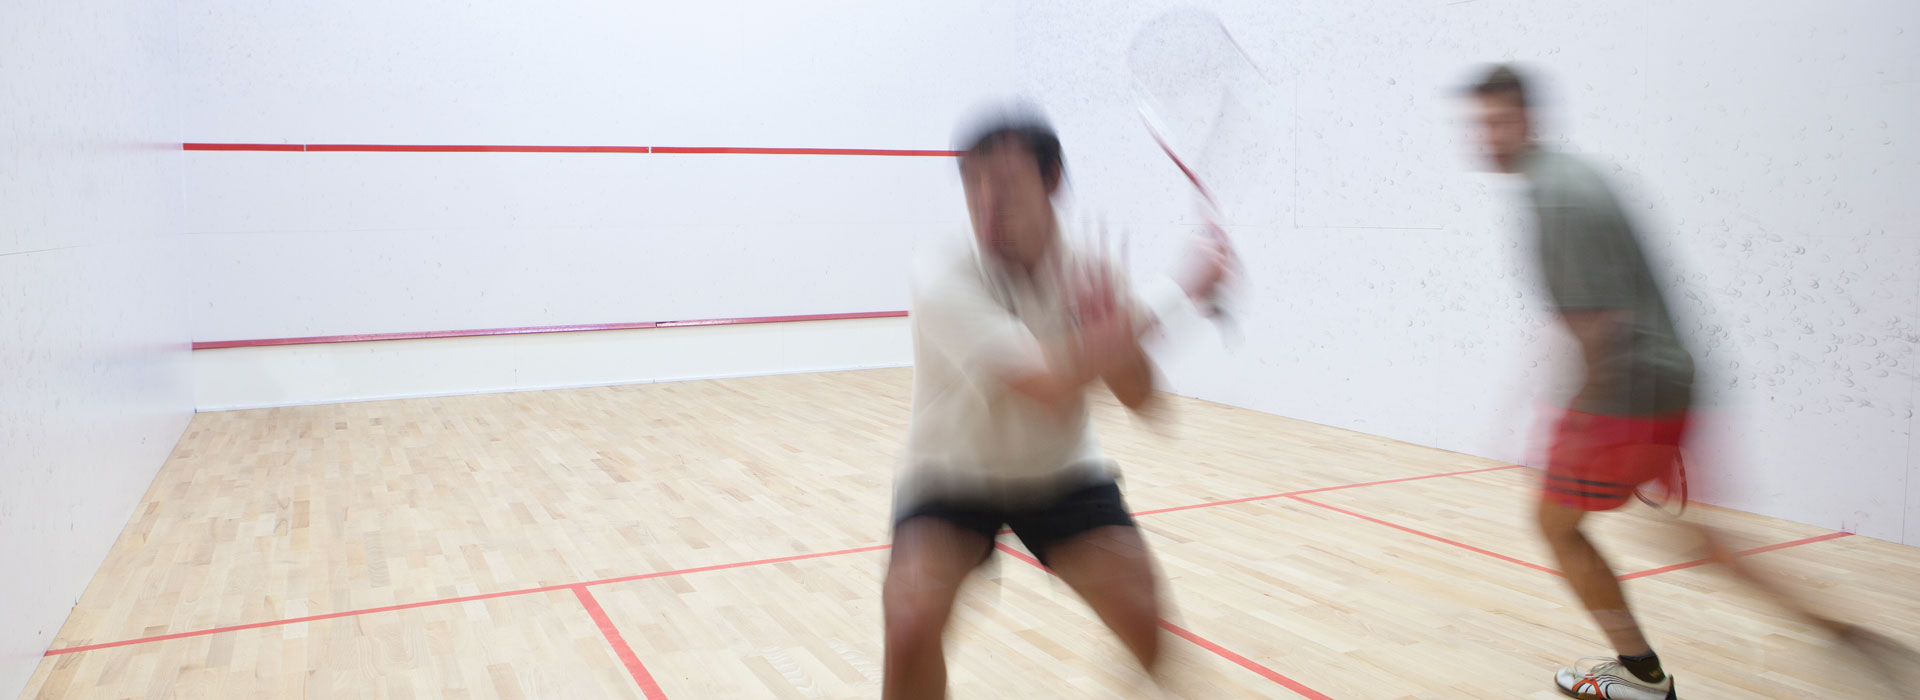 Squash playing at Malvern Active